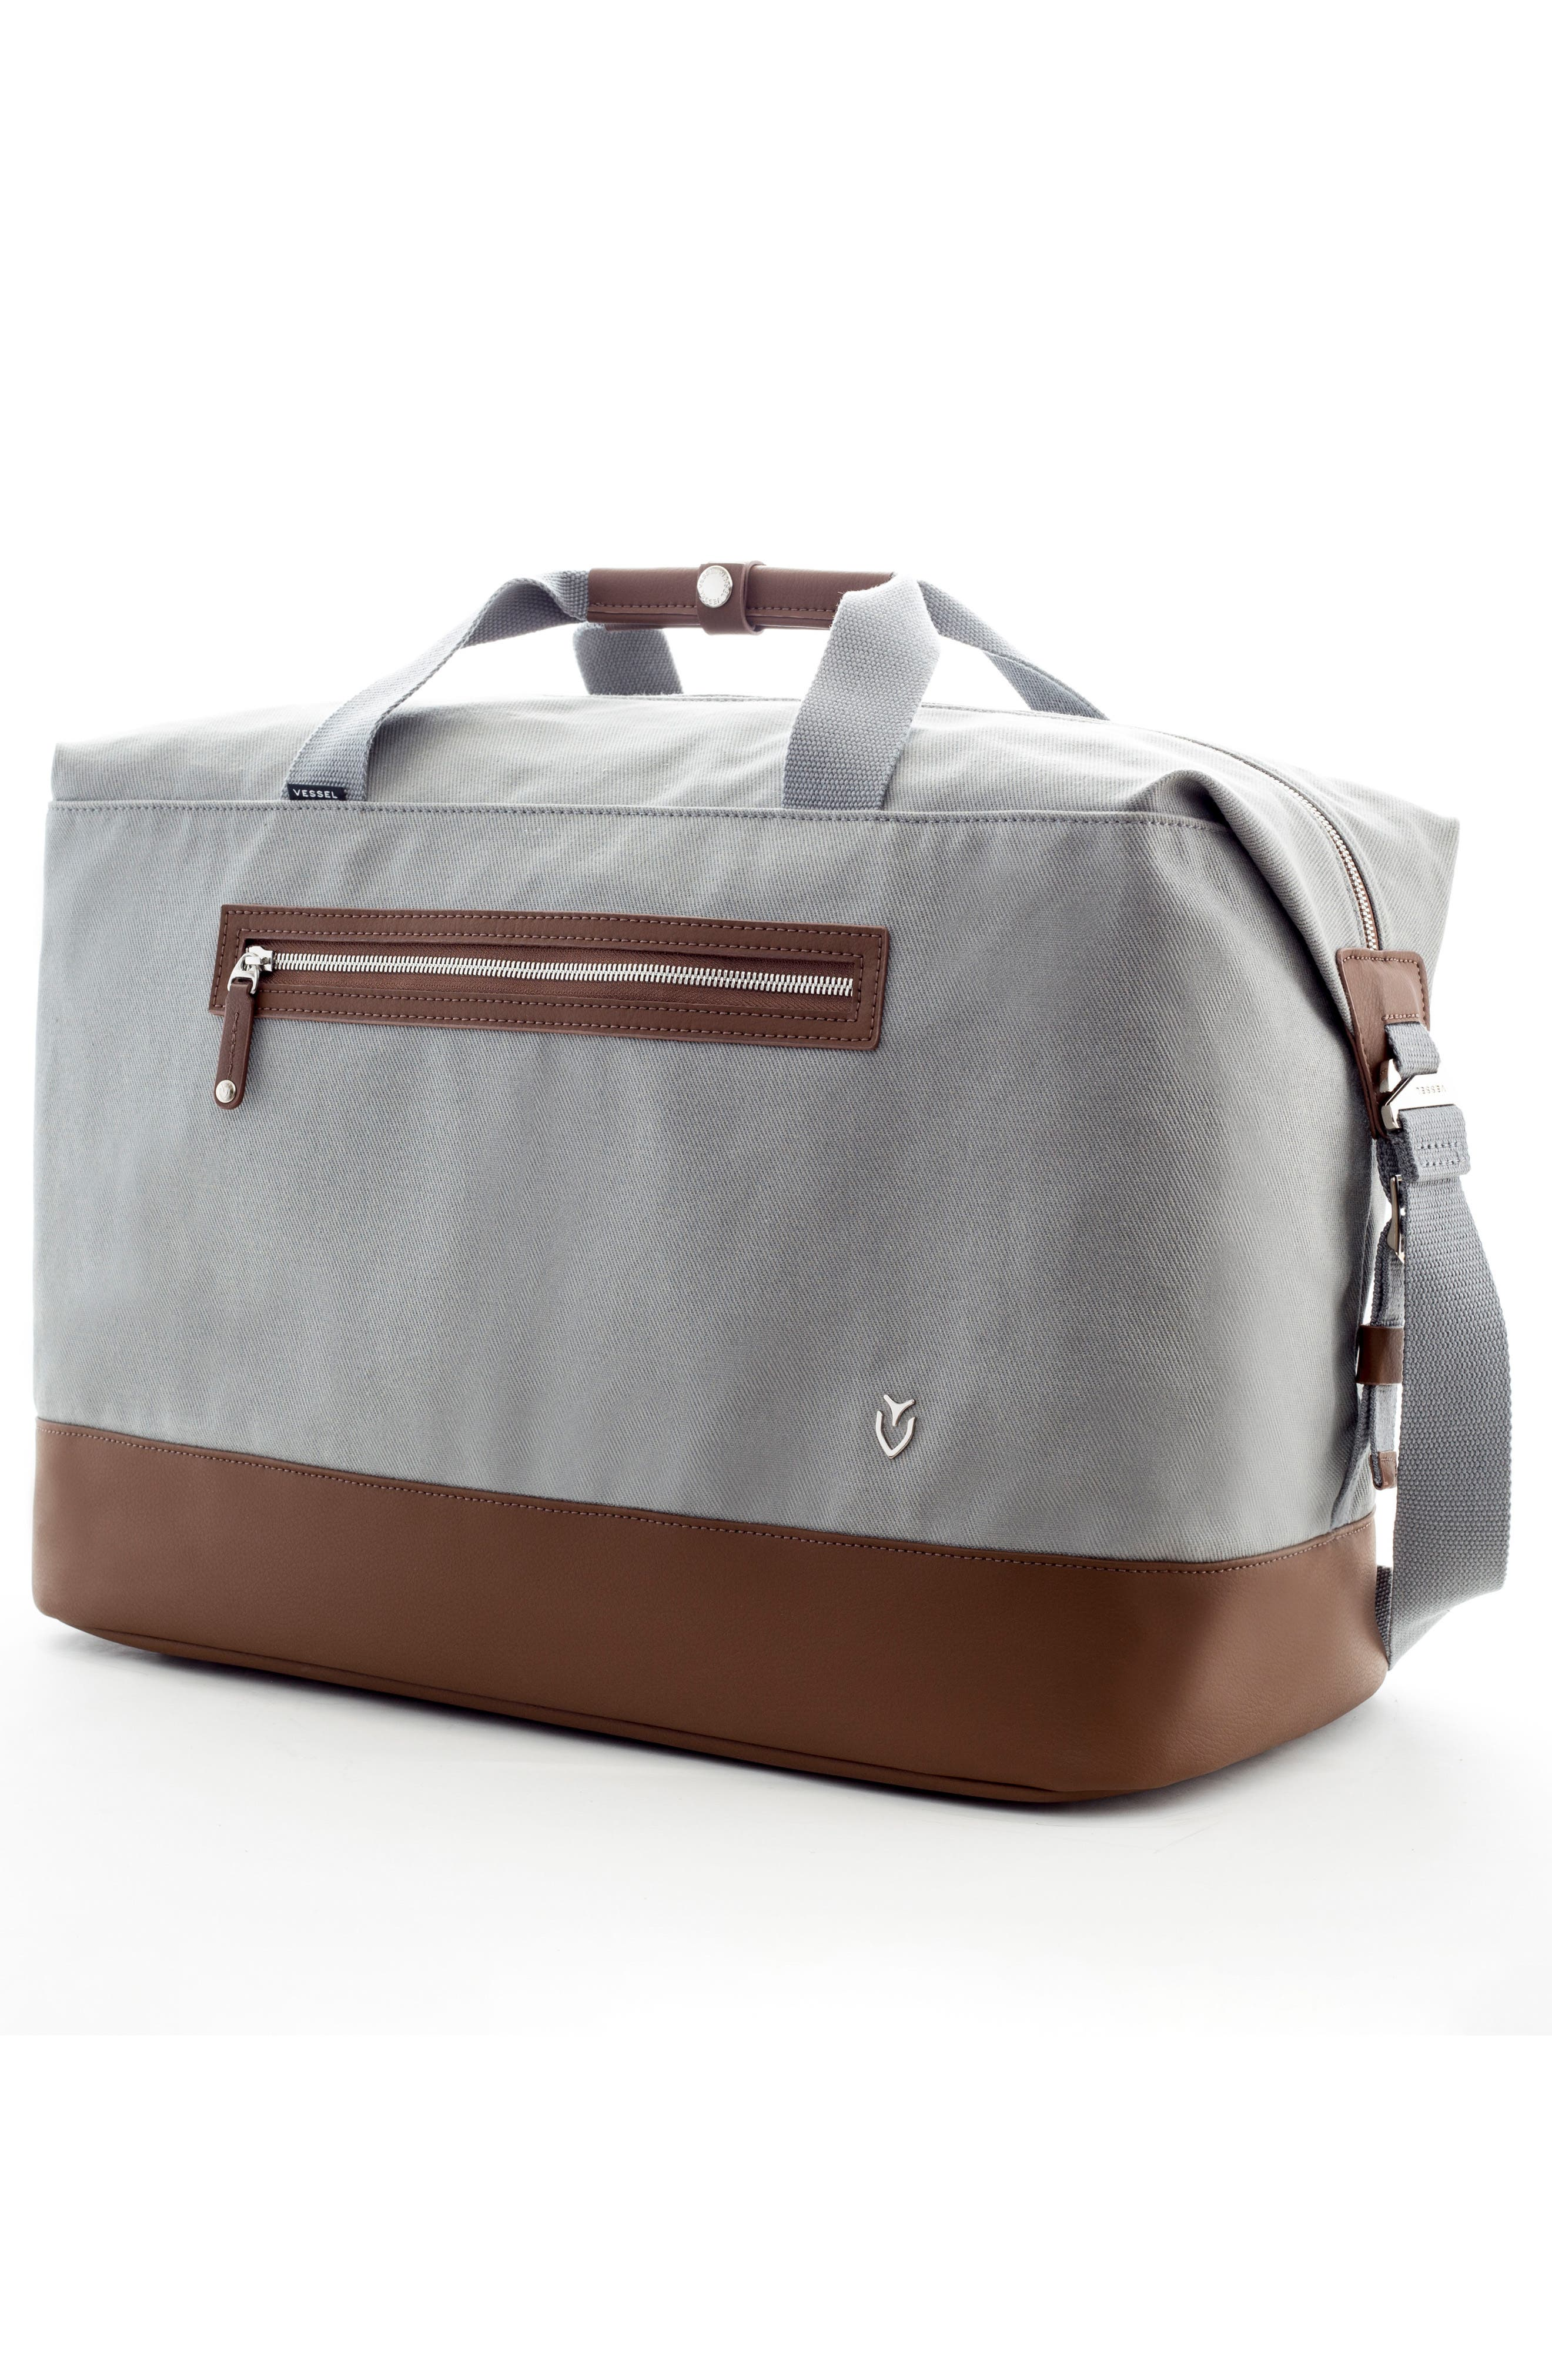 Refined Duffel Bag,                             Alternate thumbnail 3, color,                             Slate